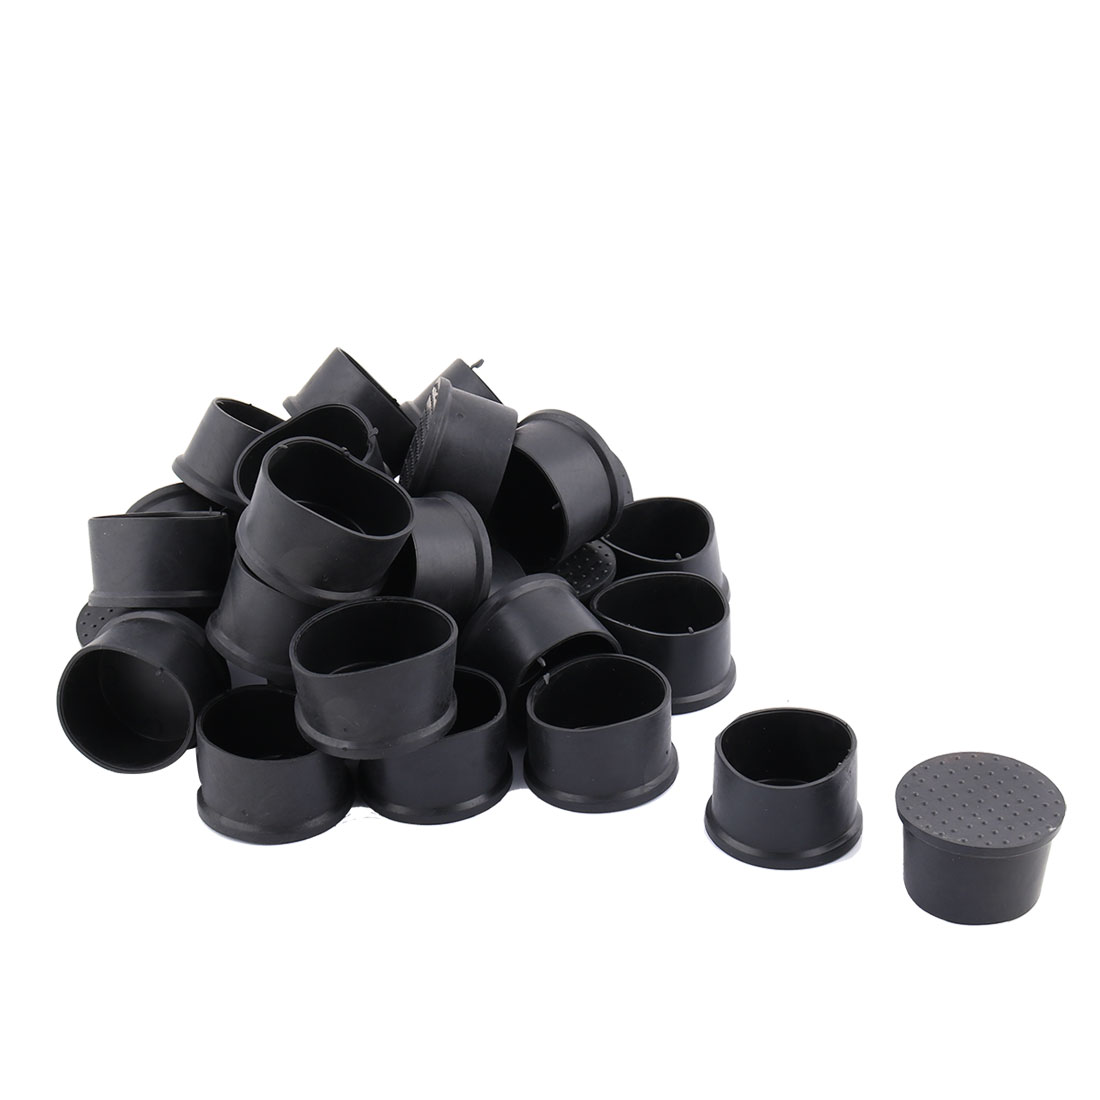 Family PVC Round Design Desk Chair Feet Tube Insert Cap Black 50mm Dia 30pcs